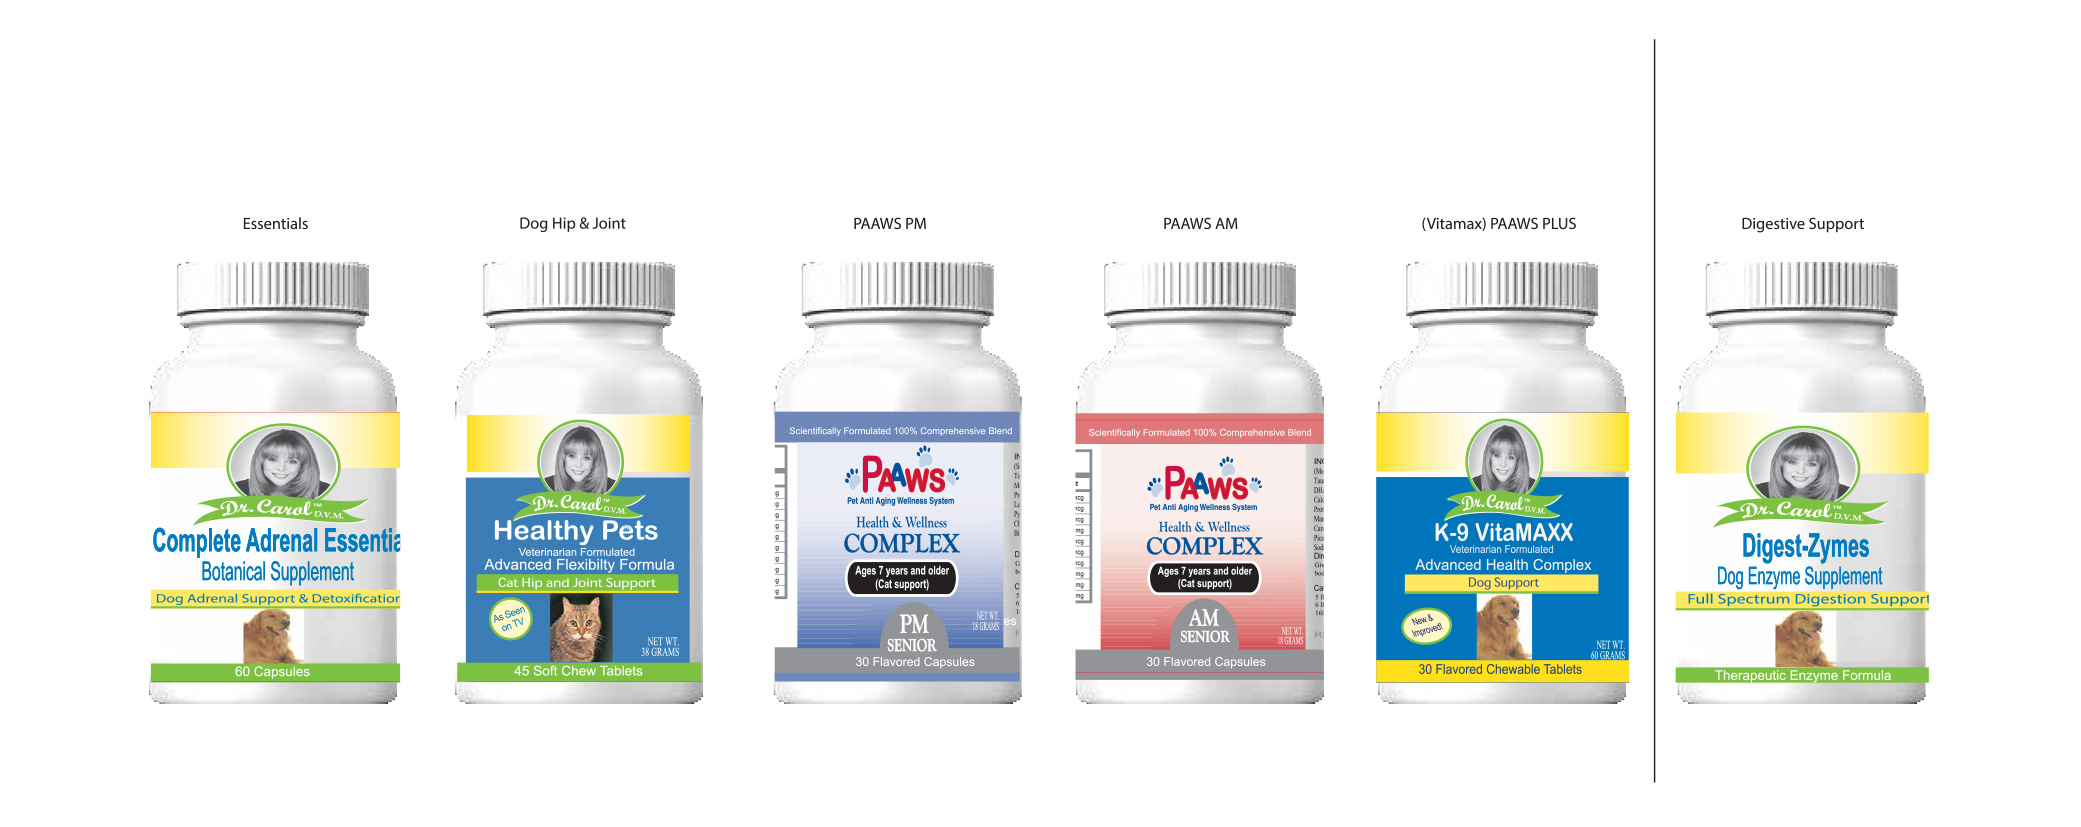 Dr. Carol DVM pet supplement bottle label before the redesign in white, blue, and yellow labels.